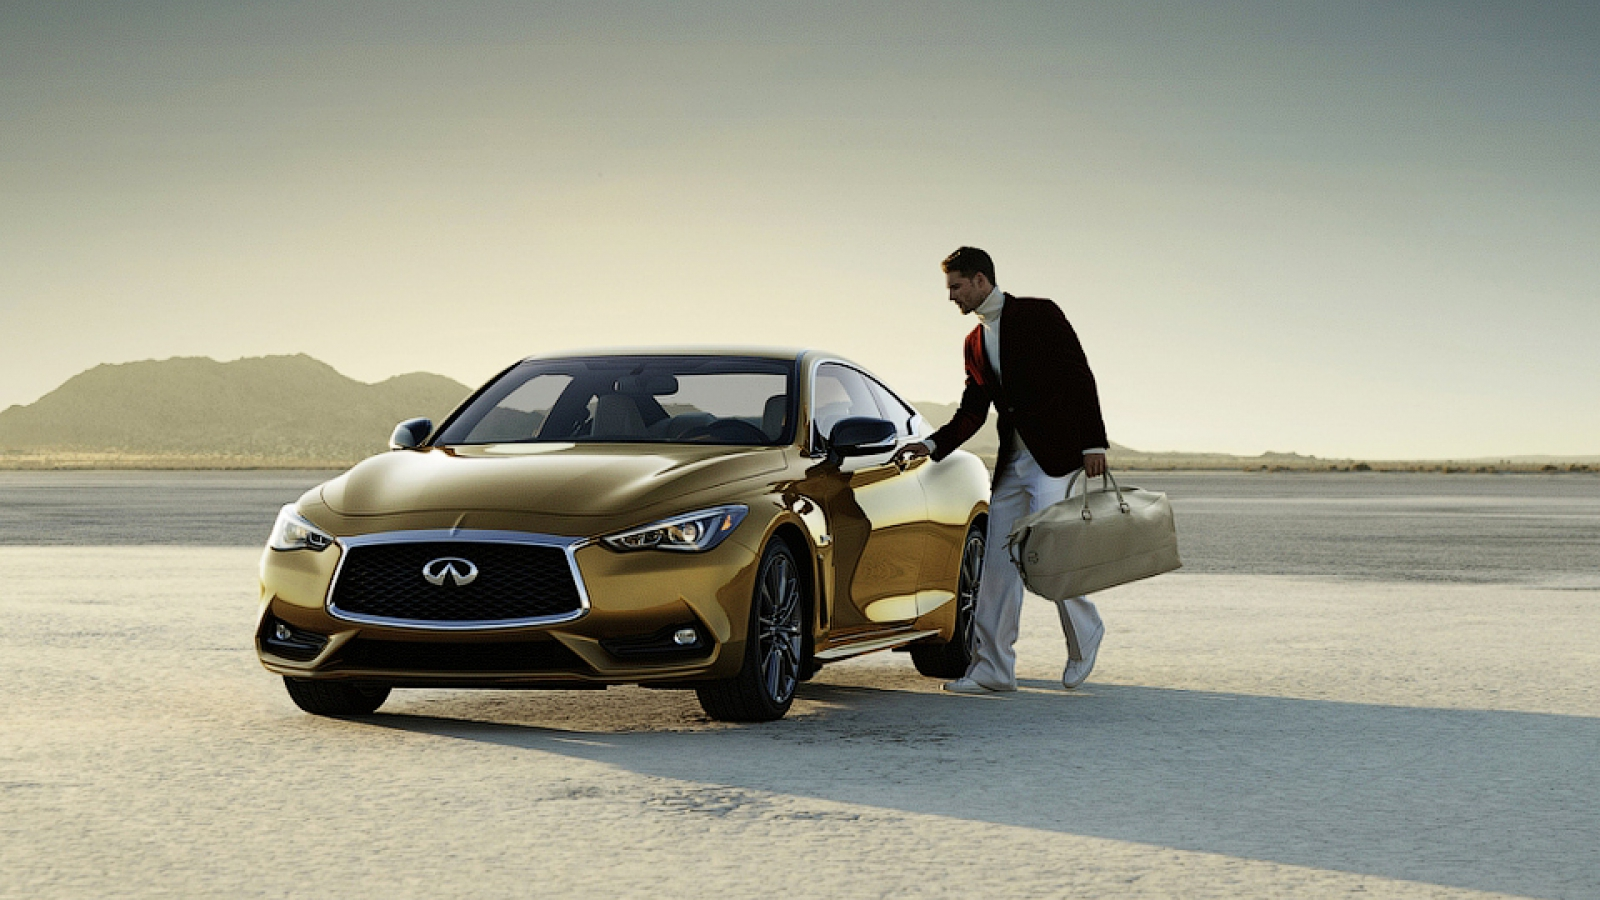 The infiniti qx70 is one of the and is ideal for people who want something that offers